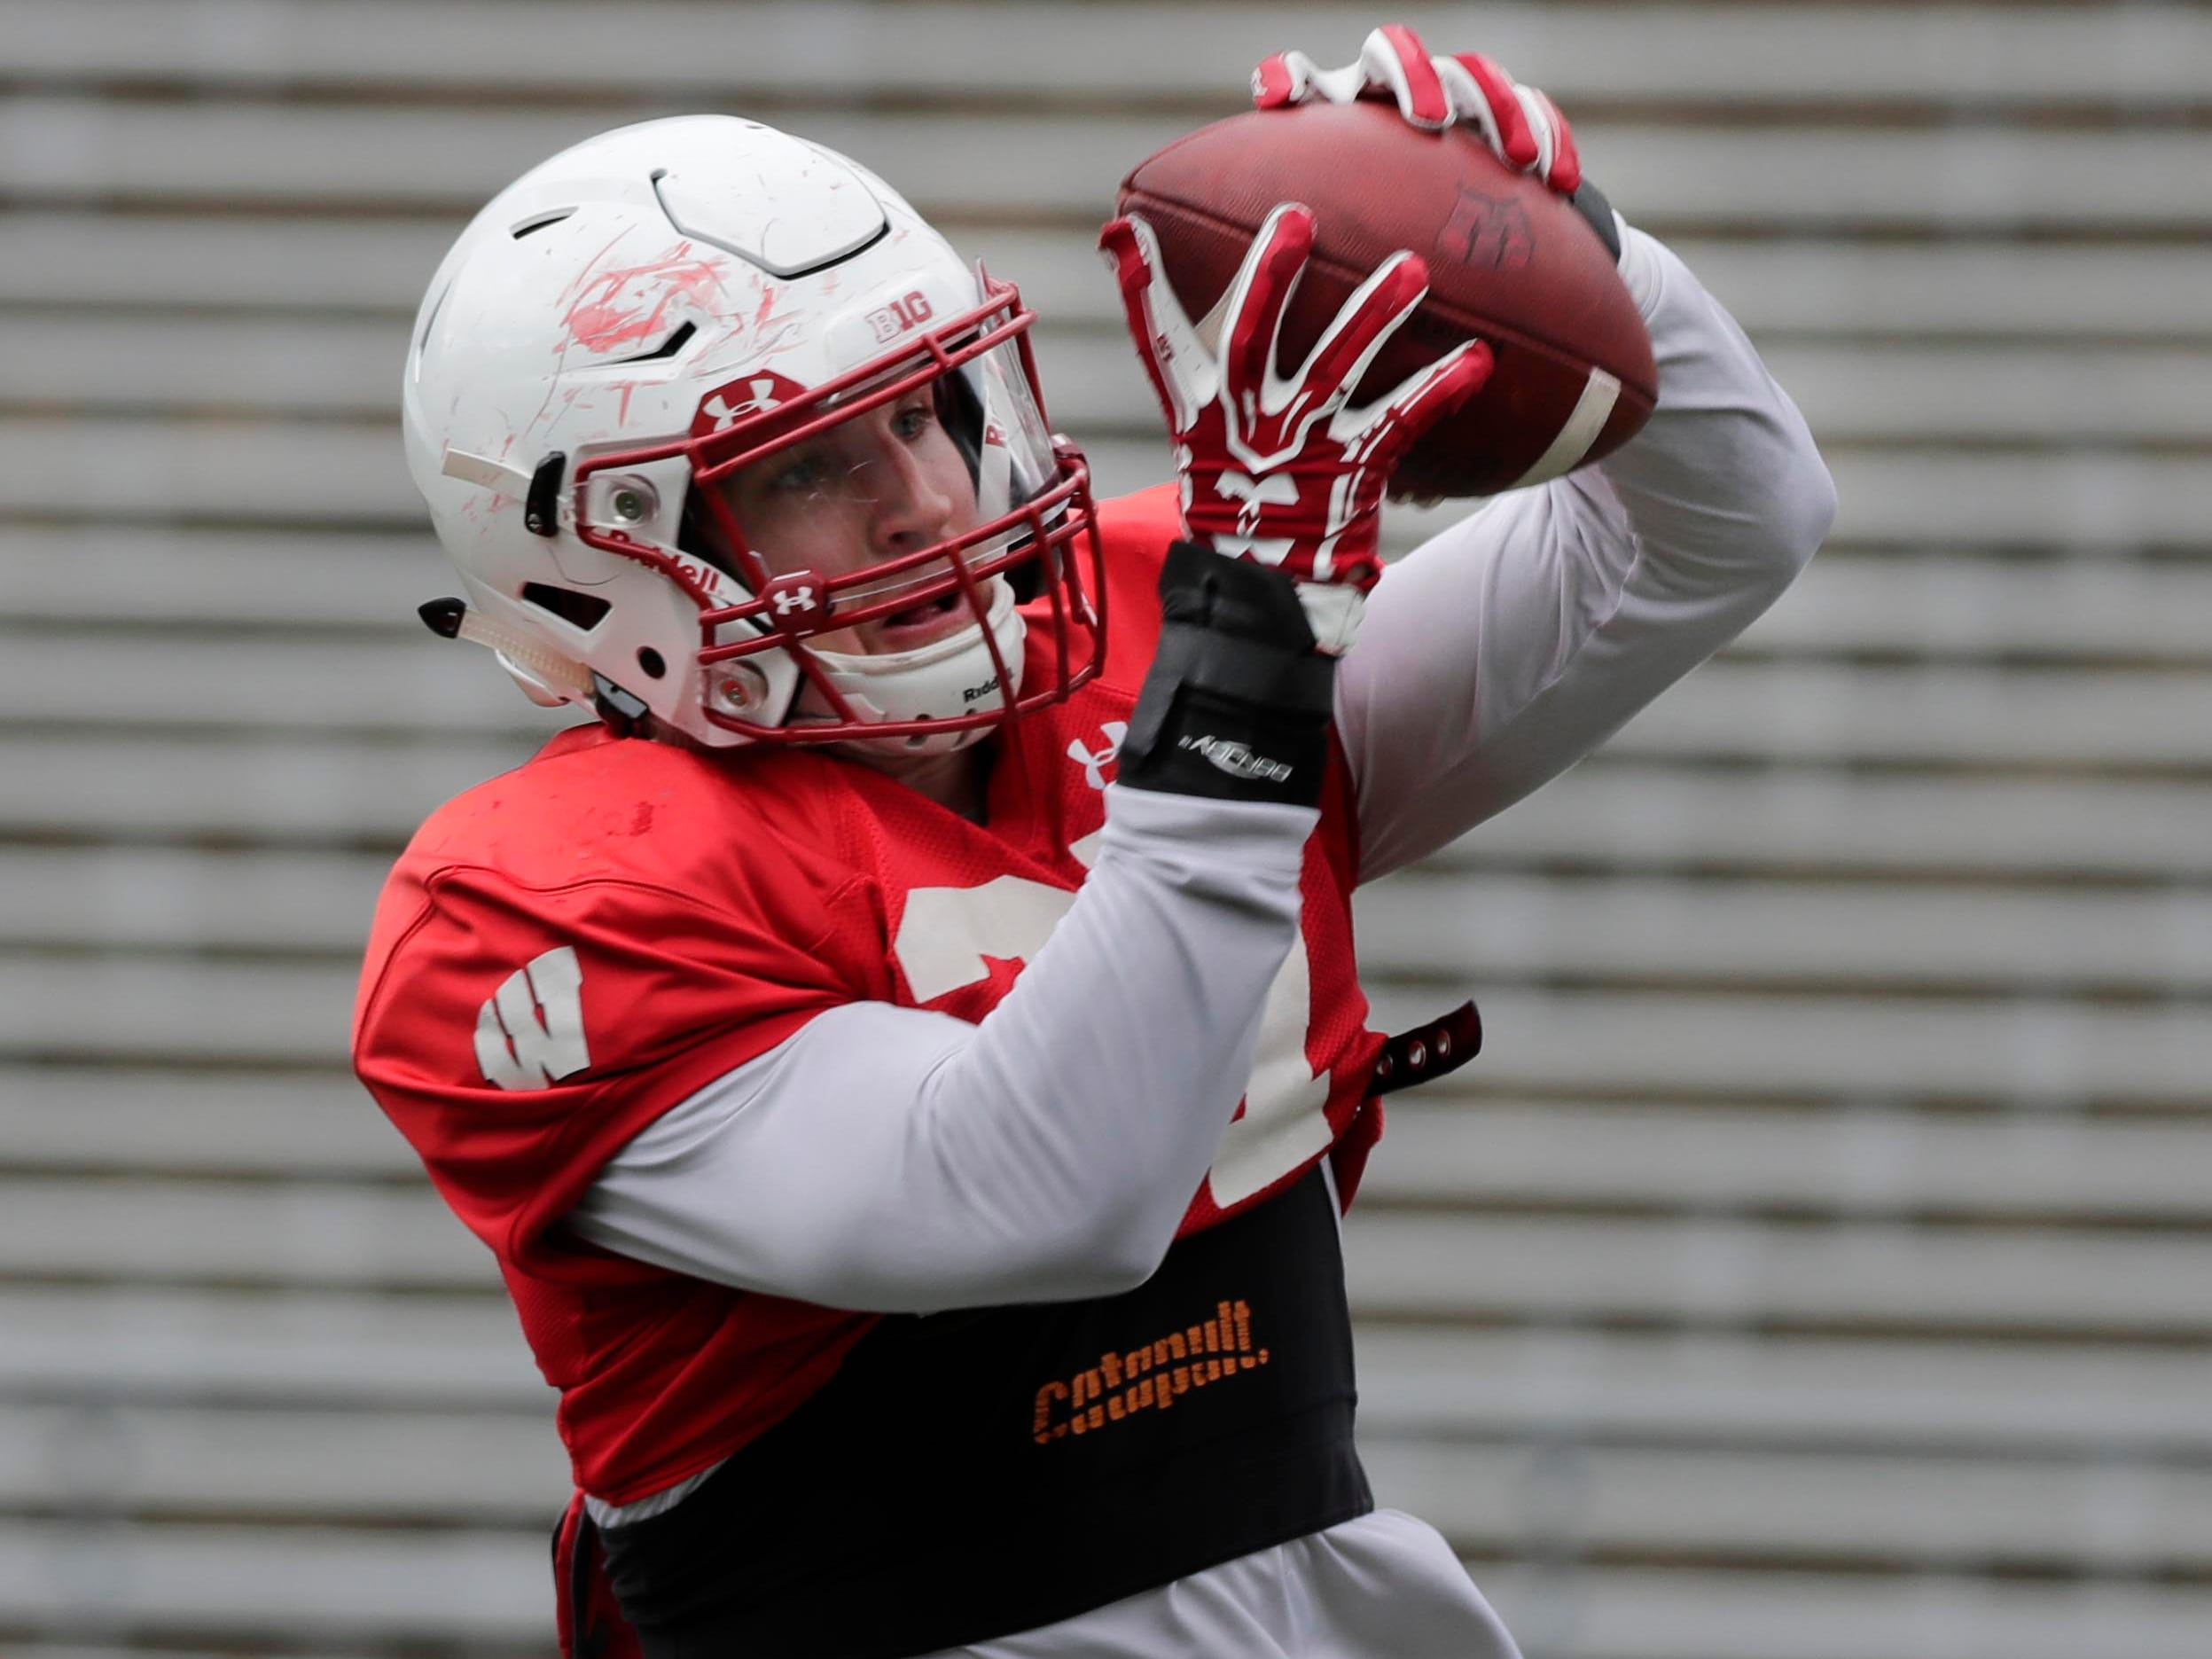 Wisconsin running back Garrett Groshek hauls in a pass during Saturday's spring practice.